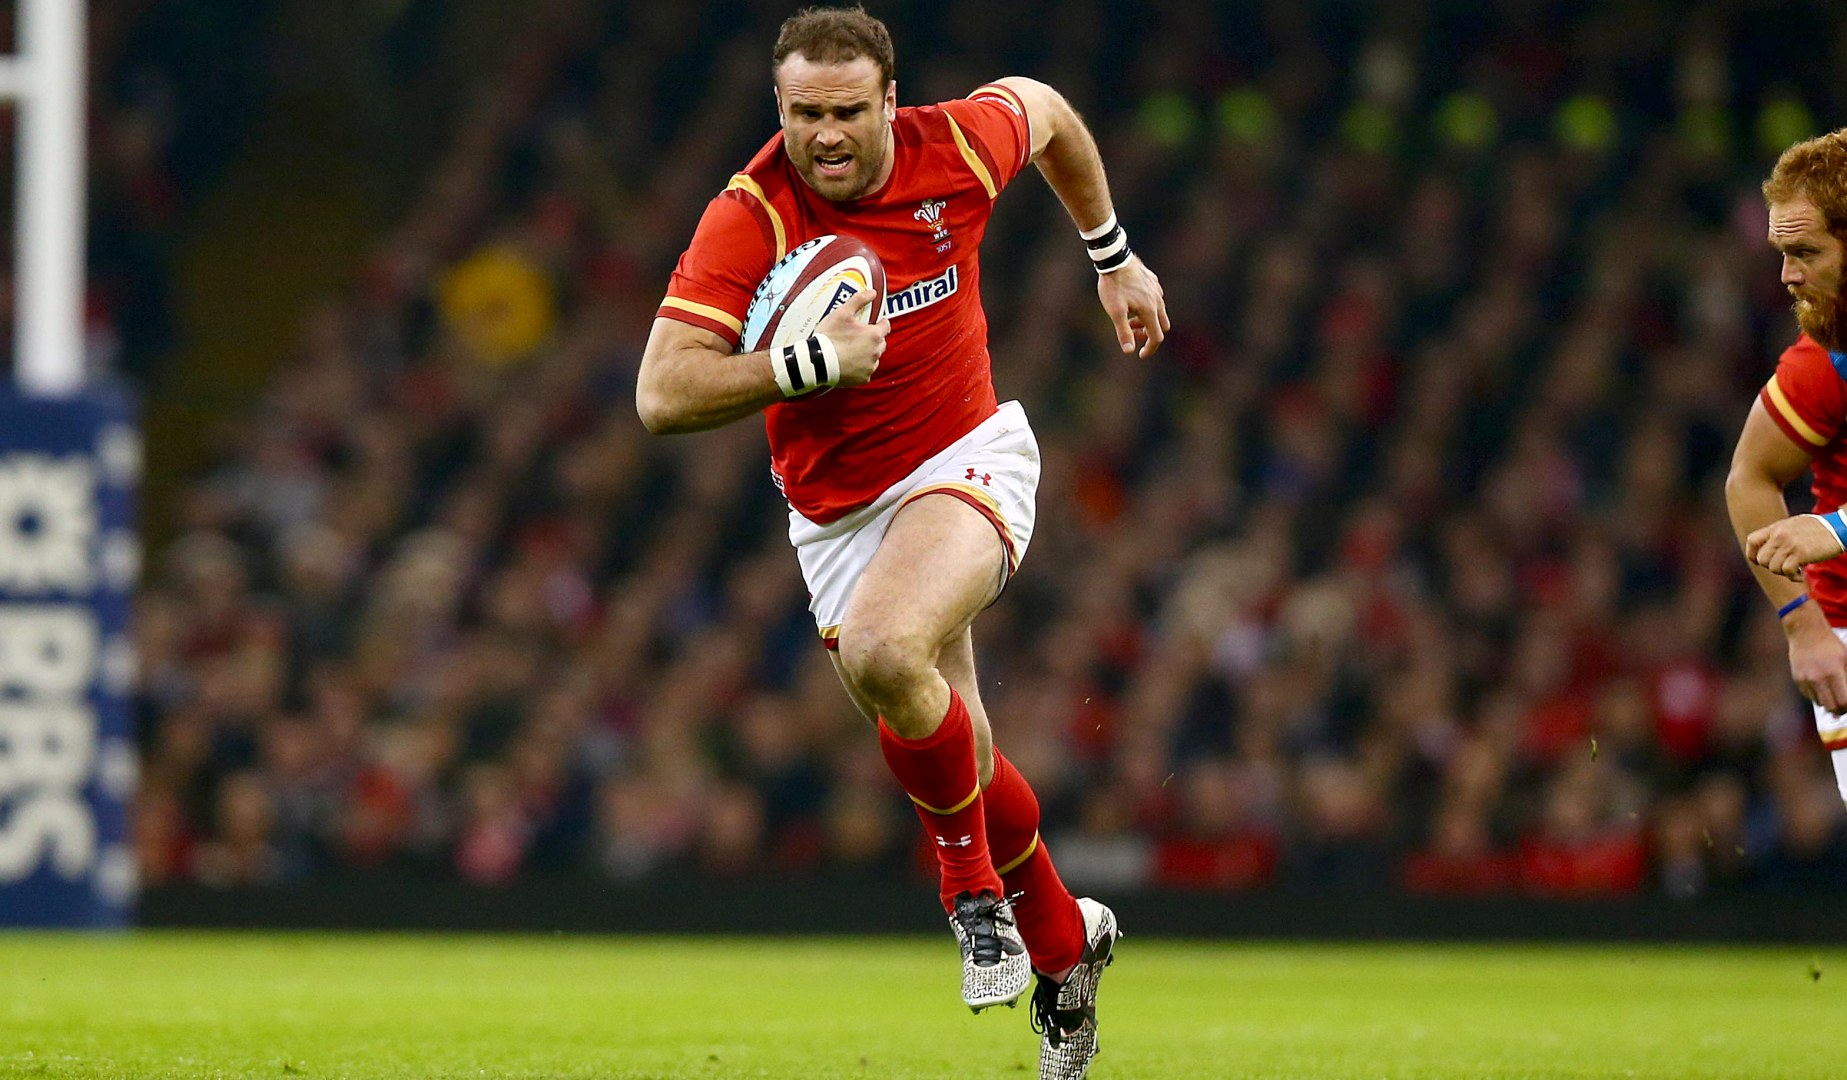 LionsWatch: Wales edge to narrow win over Japan